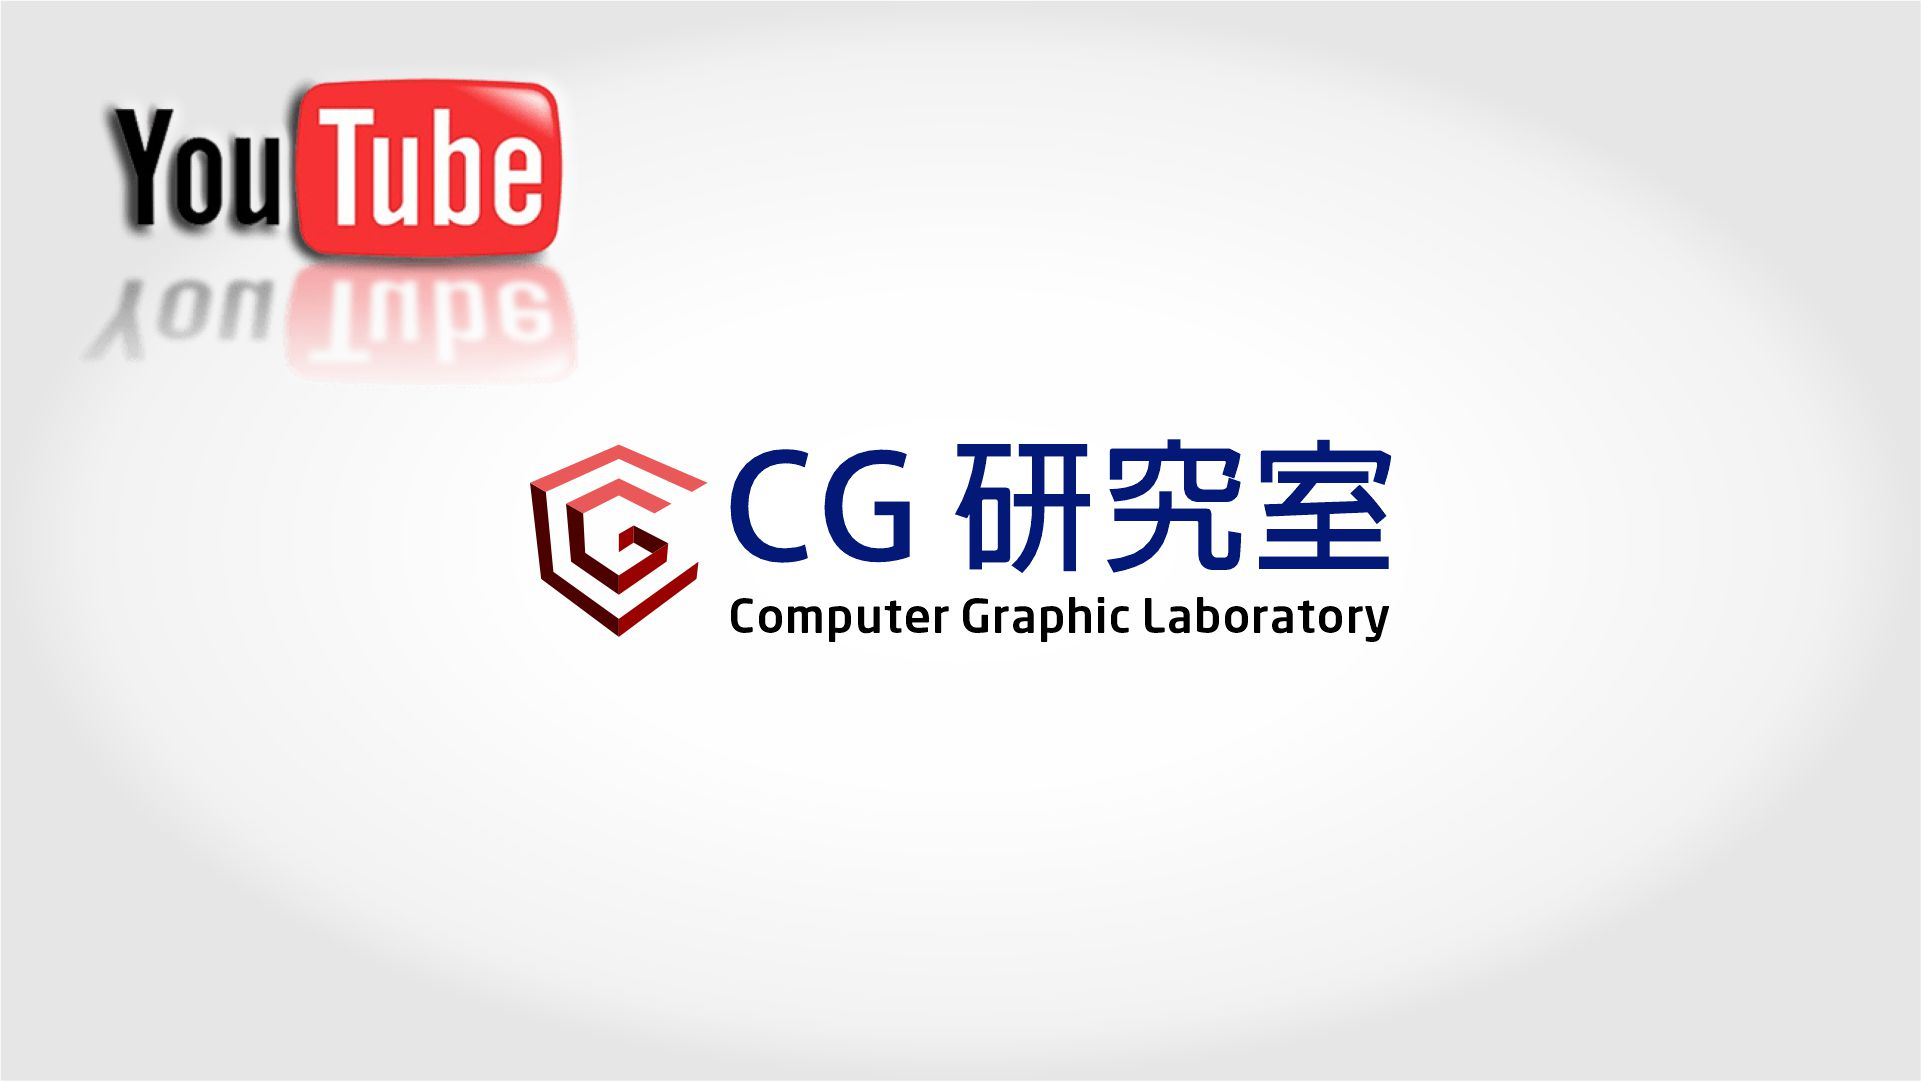 Computer Graphic Laboratory